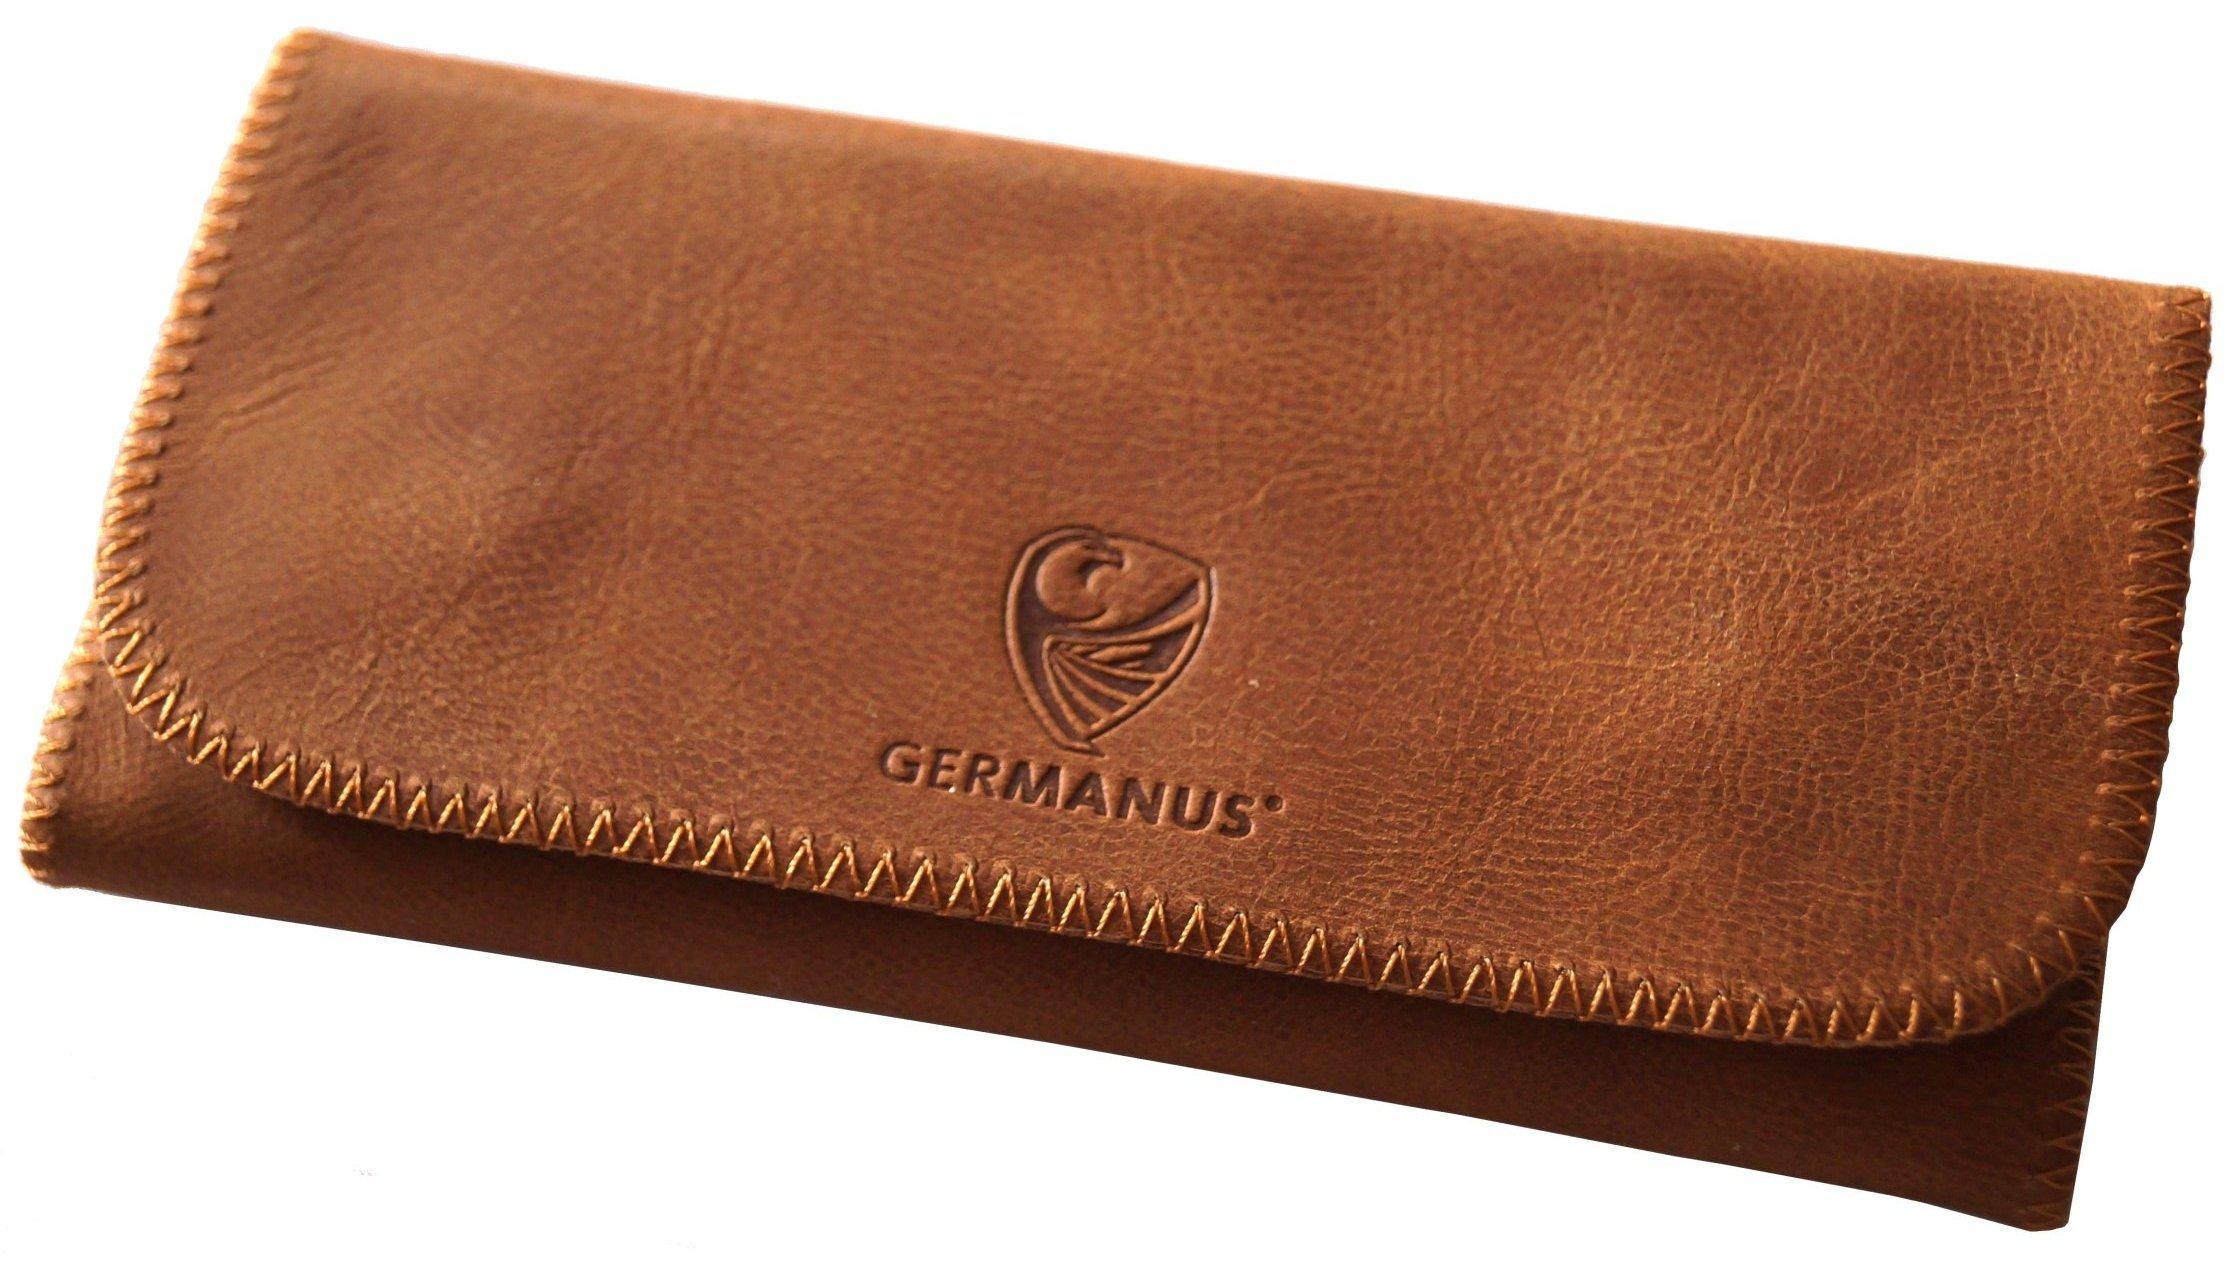 GERMANUS Estuche Bolsa Bolso de tabaco de cuero genuino, Made in EU - Albrunus: Amazon.es: Hogar